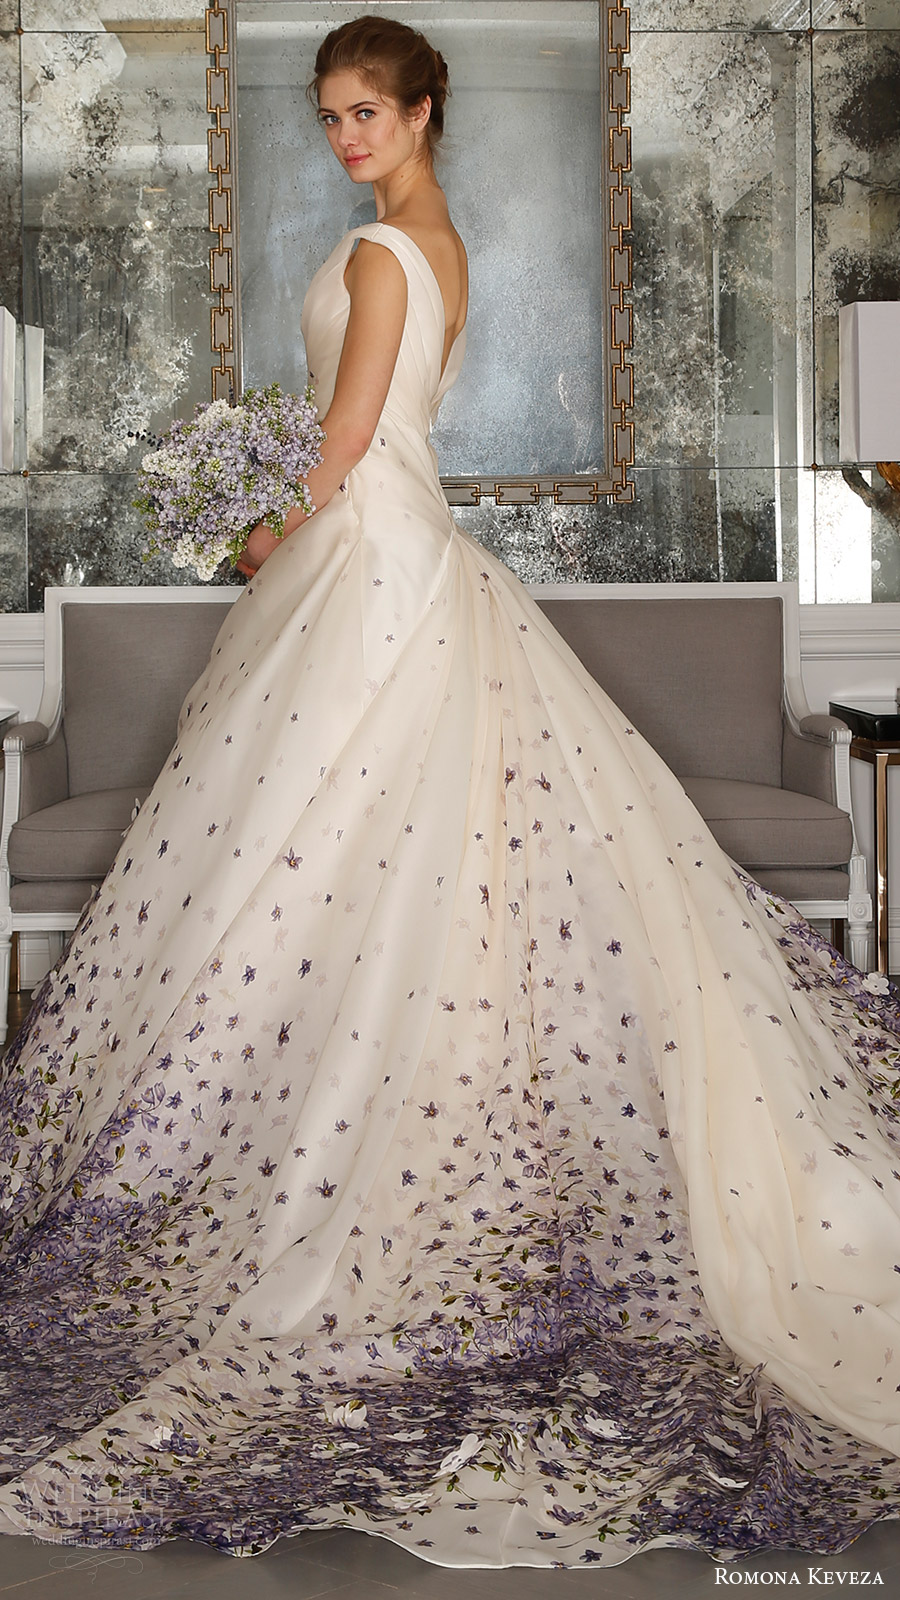 romona keveza bridal spring 2017 strapless sweetheart trumpet wedding dress (rk7408) off shoulder vneck ball gown wedding dress (rk7409) bv violet color print vback train